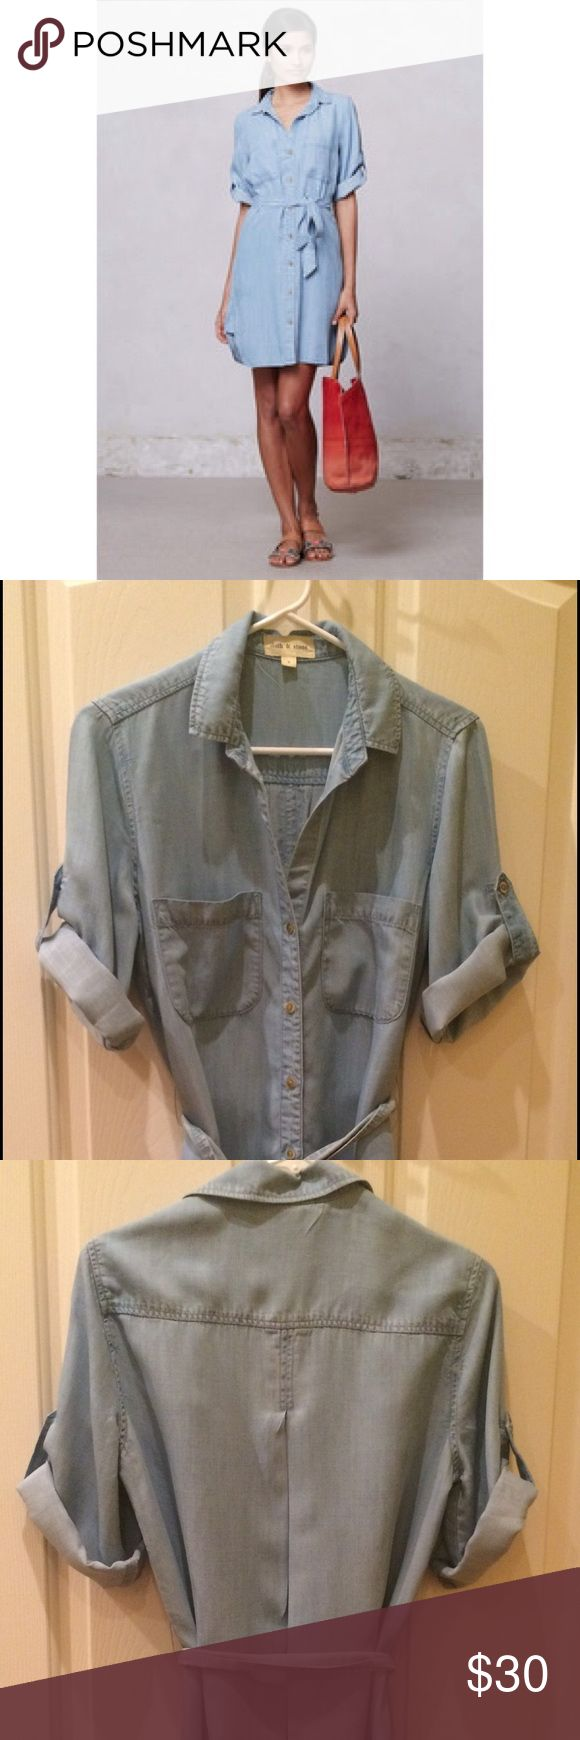 Anthropologie chambray denim shirt dress size sm Anthropologie by cloth and stone light denim button down chambray dress size small. Great condition! Anthropologie Dresses